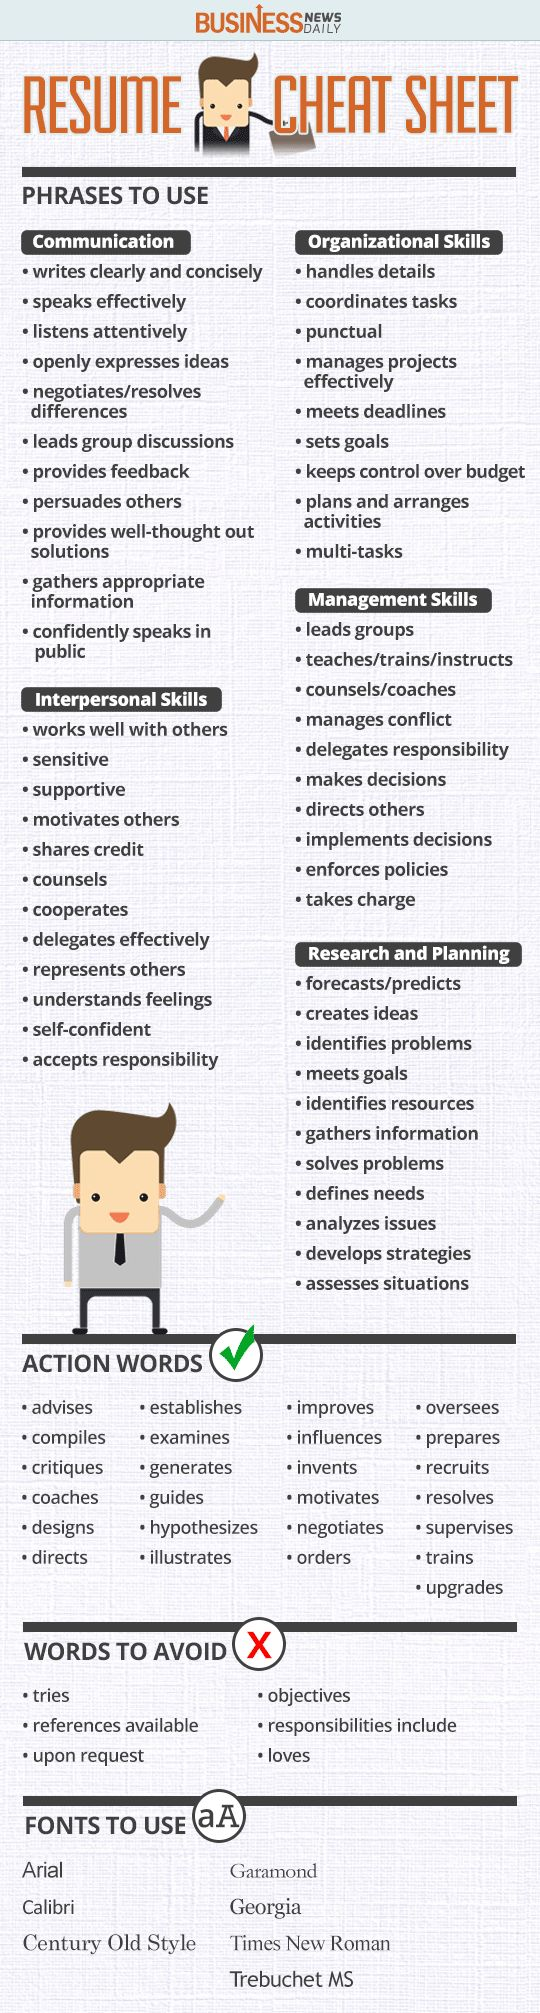 Opposenewapstandardsus  Scenic  Ideas About Resume On Pinterest  Cv Format Resume Cv And  With Great Resume Cheat Sheet Infographic Andrews Almost Done With A Complete Unit On Employment Which With Enchanting Free Resume Word Templates Also I Need Help With My Resume In Addition Sample Resume For Entry Level And How To Form A Resume As Well As General Resume Skills Additionally Making A Resume With No Experience From Pinterestcom With Opposenewapstandardsus  Great  Ideas About Resume On Pinterest  Cv Format Resume Cv And  With Enchanting Resume Cheat Sheet Infographic Andrews Almost Done With A Complete Unit On Employment Which And Scenic Free Resume Word Templates Also I Need Help With My Resume In Addition Sample Resume For Entry Level From Pinterestcom